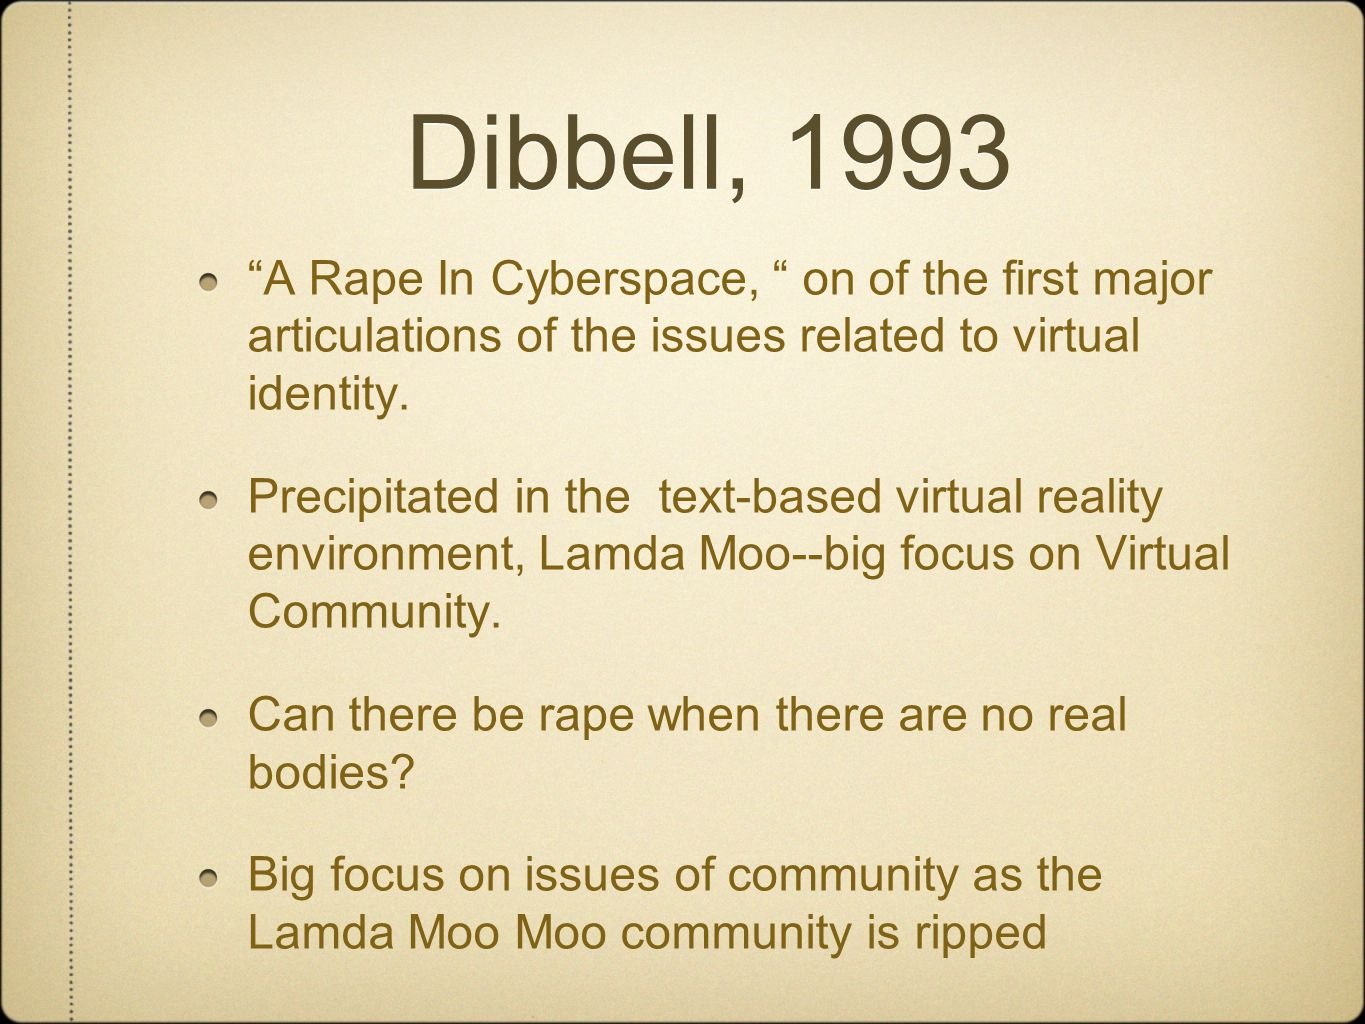 Dibbell, 1993 A Rape In Cyberspace, on of the first major articulations of the issues related to virtual identity.